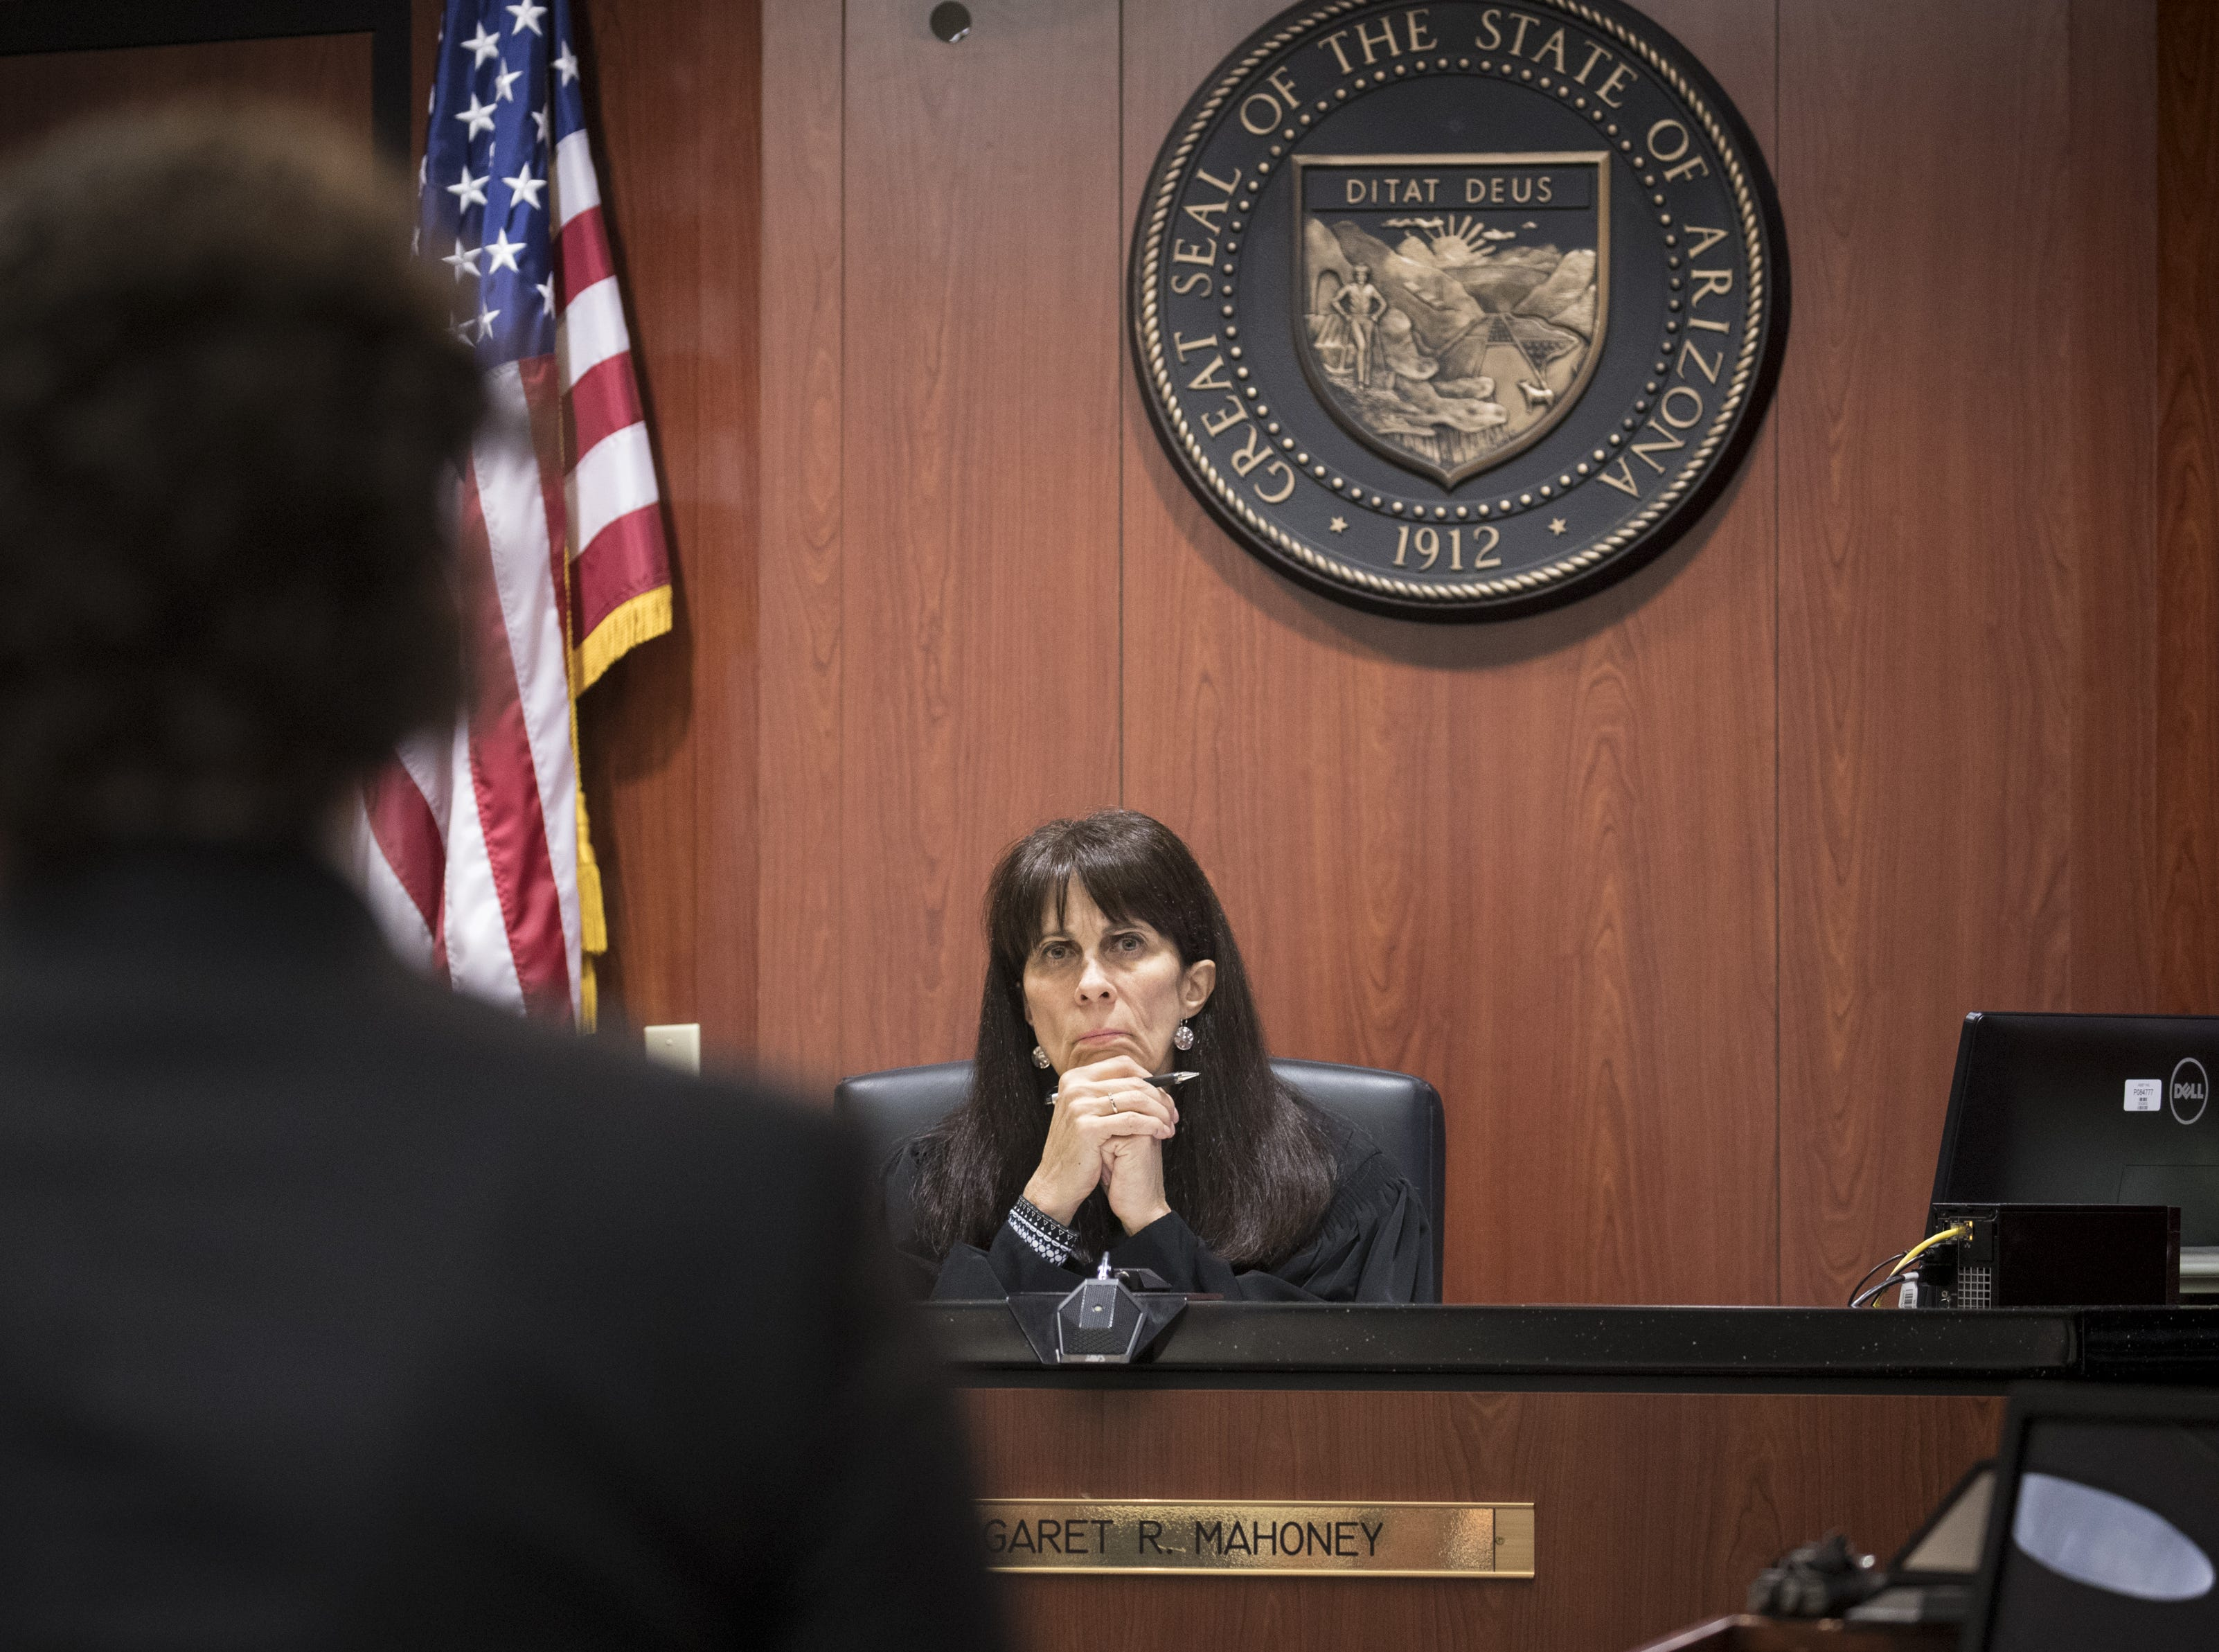 Judge Margaret Mahoney listens during a hearing in her Maricopa County Superior courtroom in Phoenix on Nov. 9, 2018,